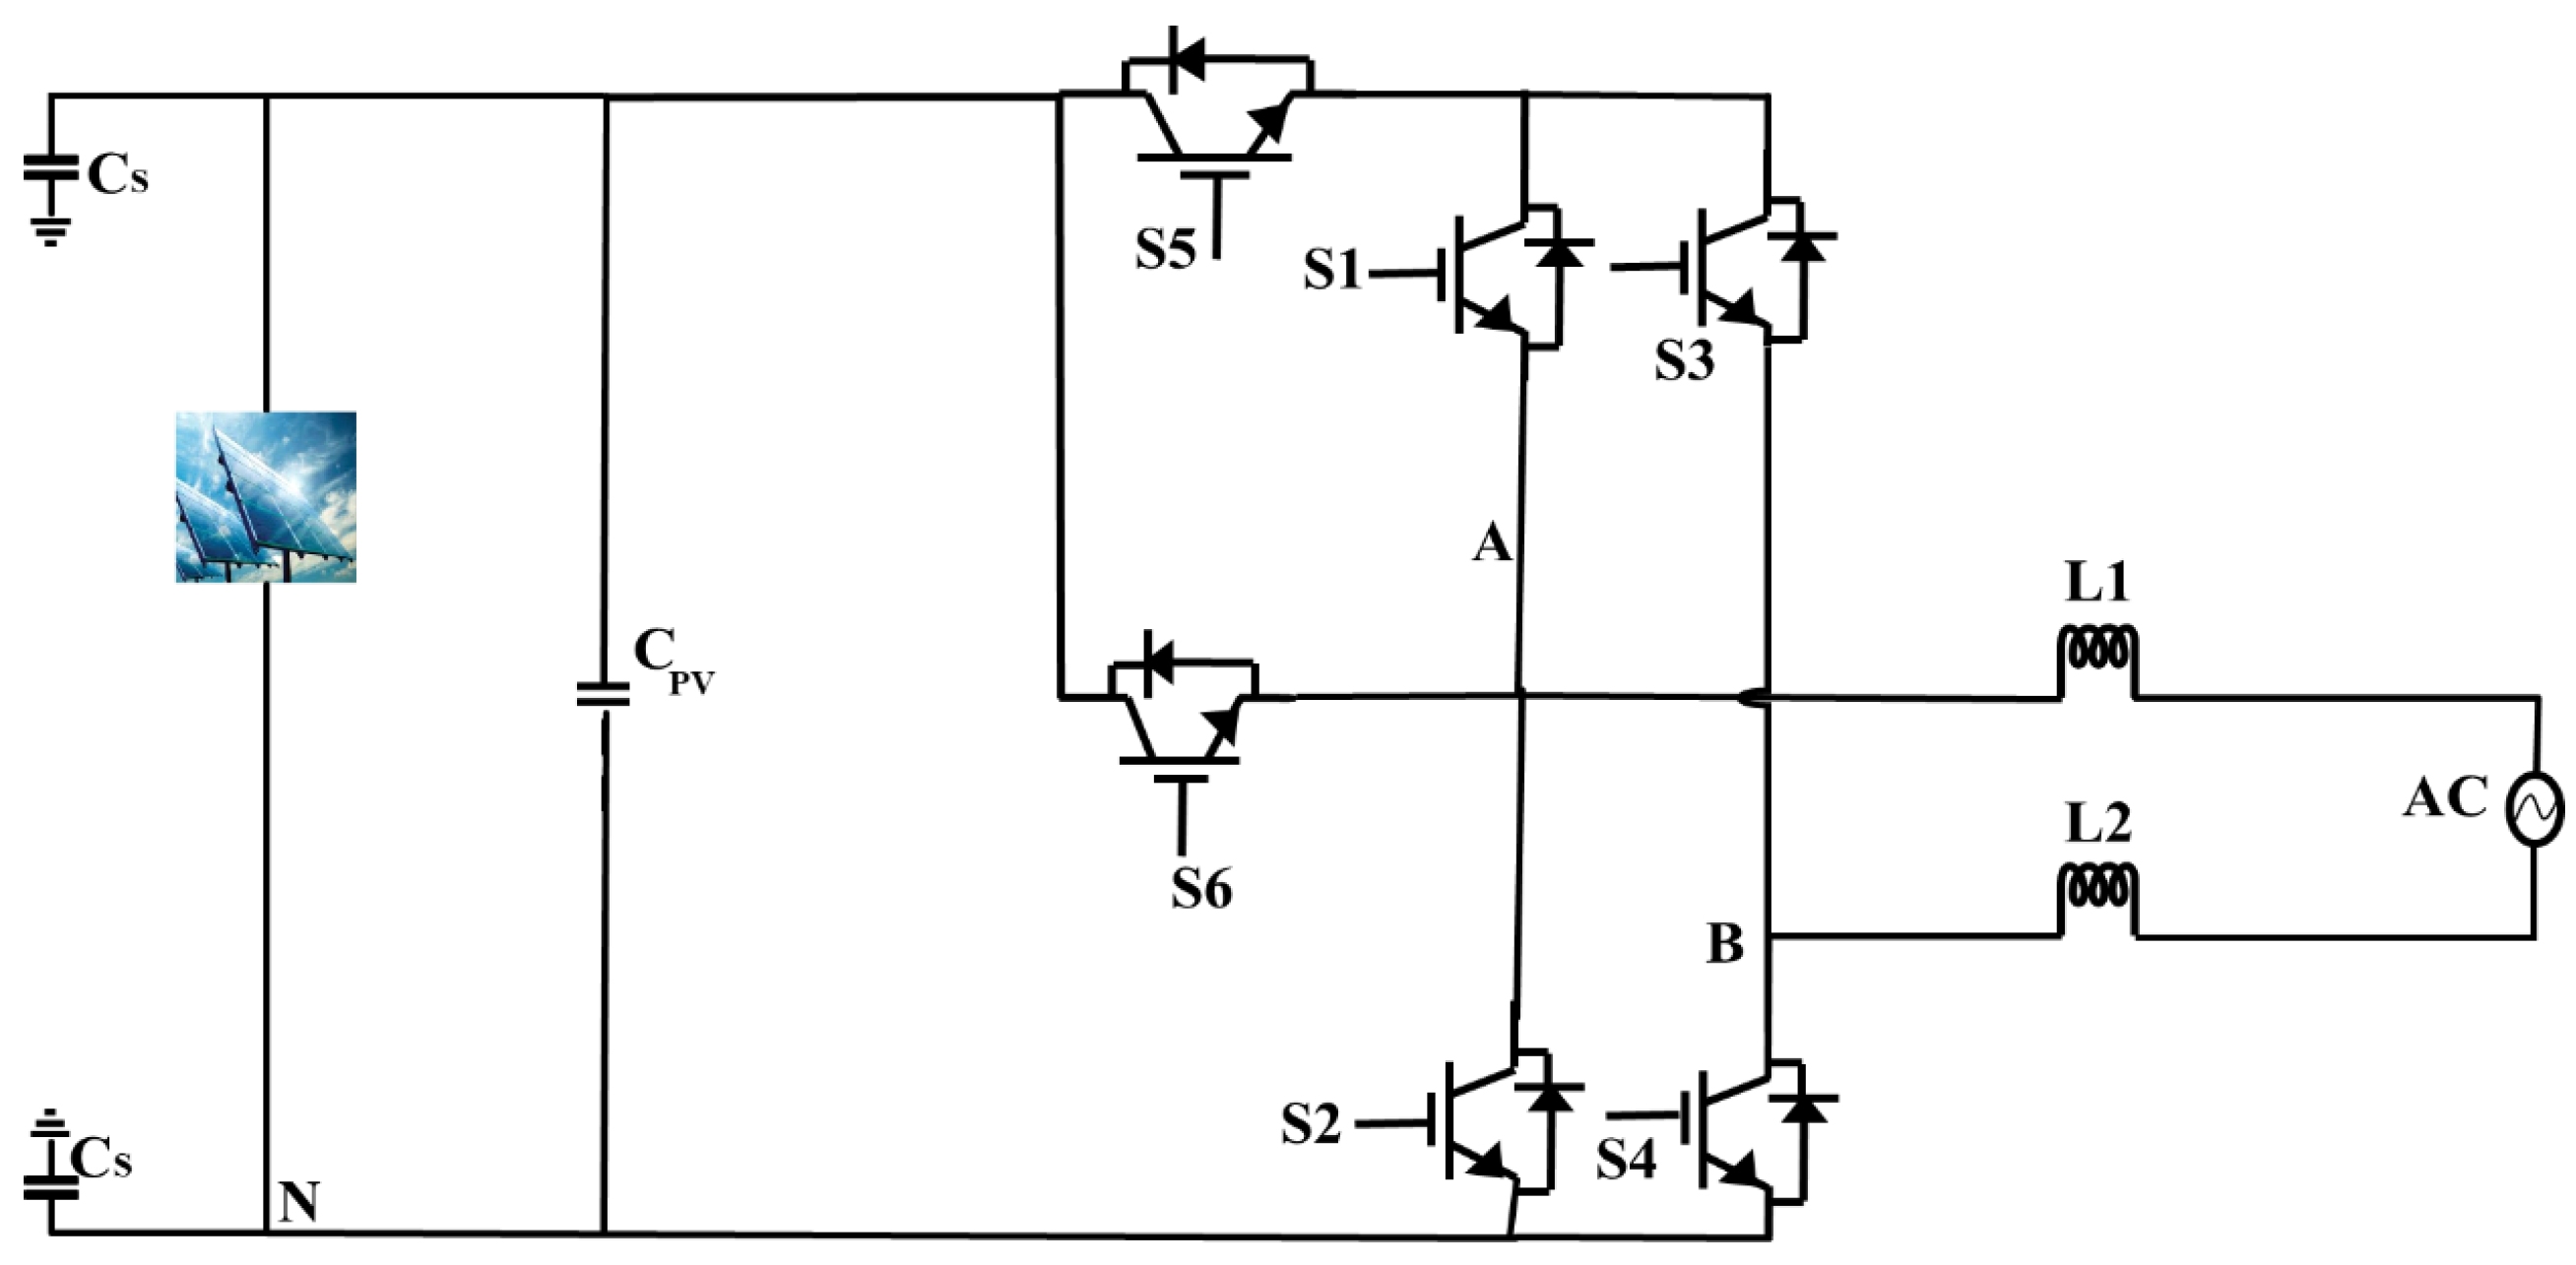 Single Phase Inverter Circuit Diagram | Jlpea Free Full Text An Improved Proposed Single Phase